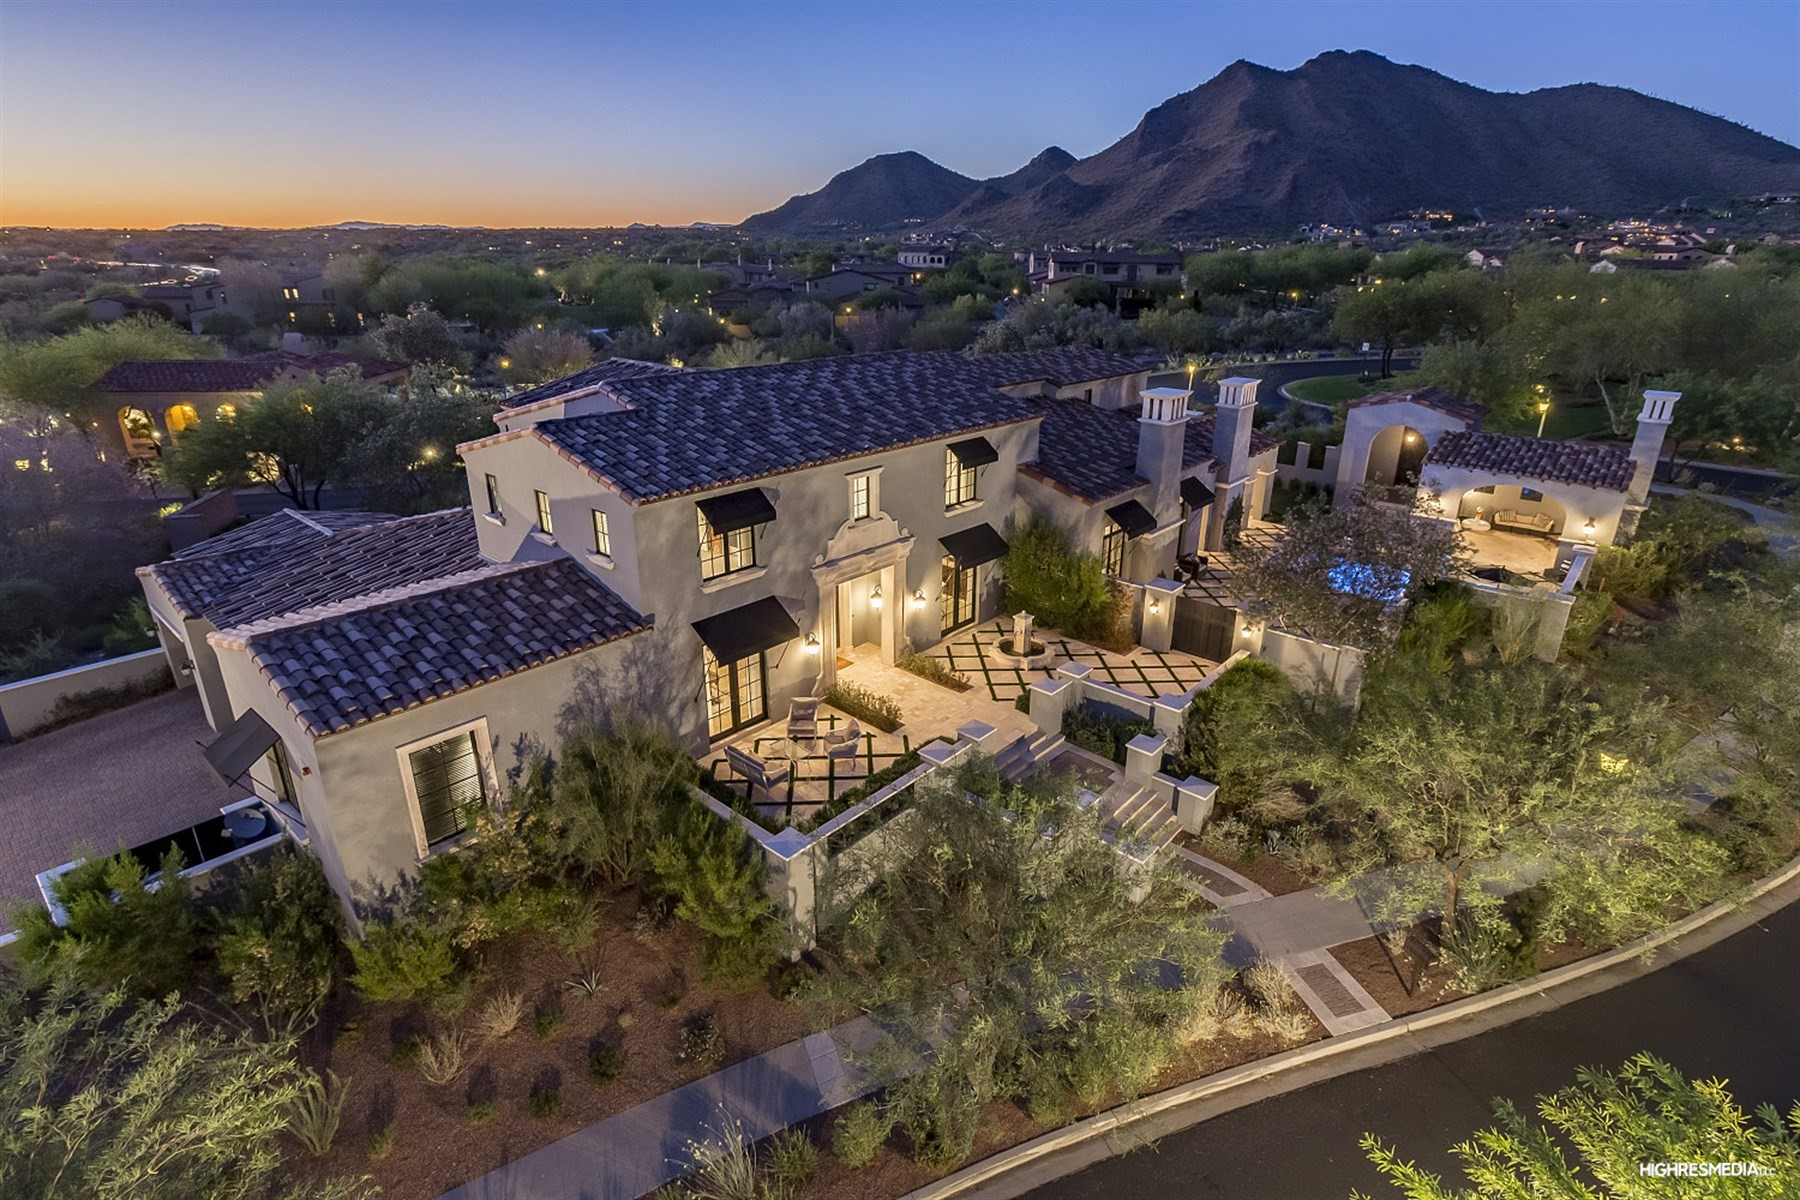 단독 가정 주택 용 매매 에 Incredible Mediterranean Style Residence in The Parks at Silverleaf 20044 N 101st Way, Scottsdale, 아리조나, 85255 미국